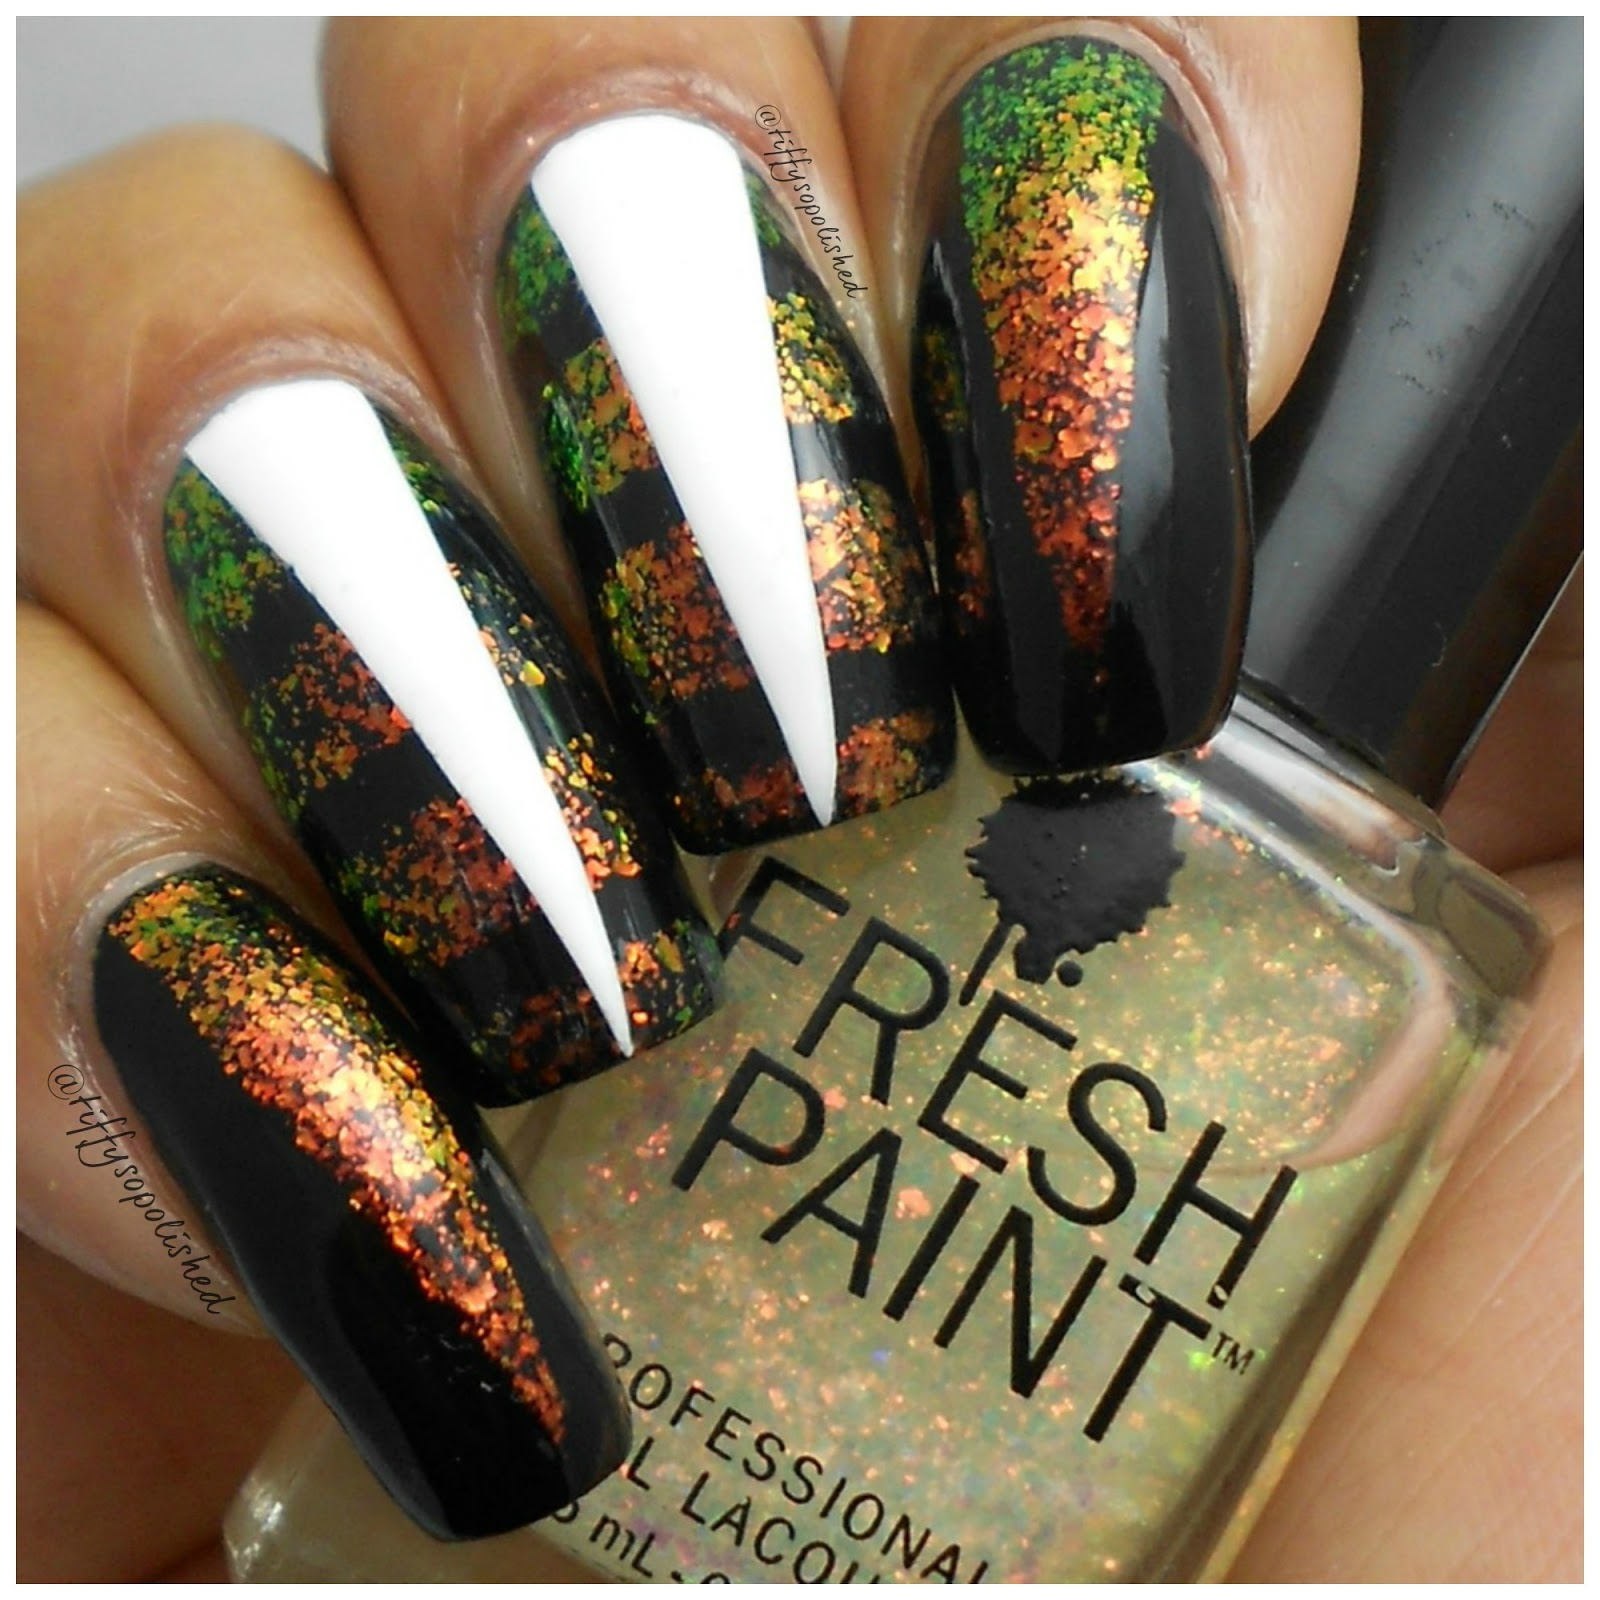 Fresh_Paint_Sugar_Crush_Over_Funky_Fingers_Dark_Knight